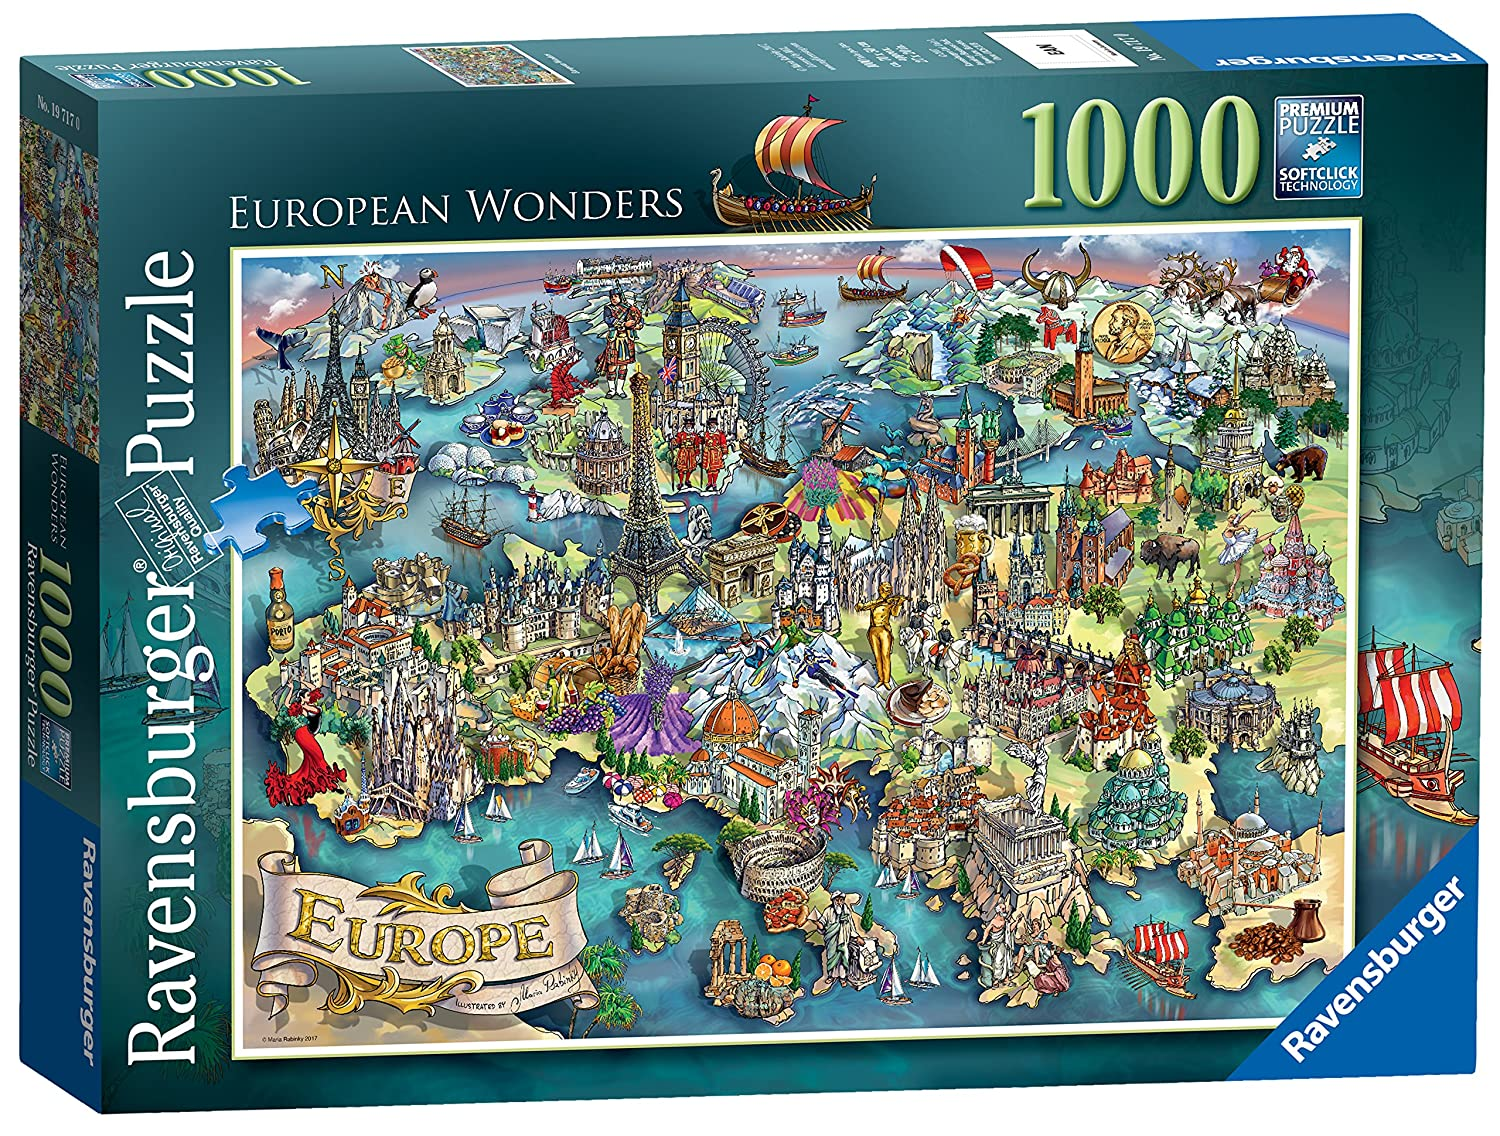 Ravensburger European Wonders 1000pc Jigsaw Puzzle Amazoncouk Toys Games